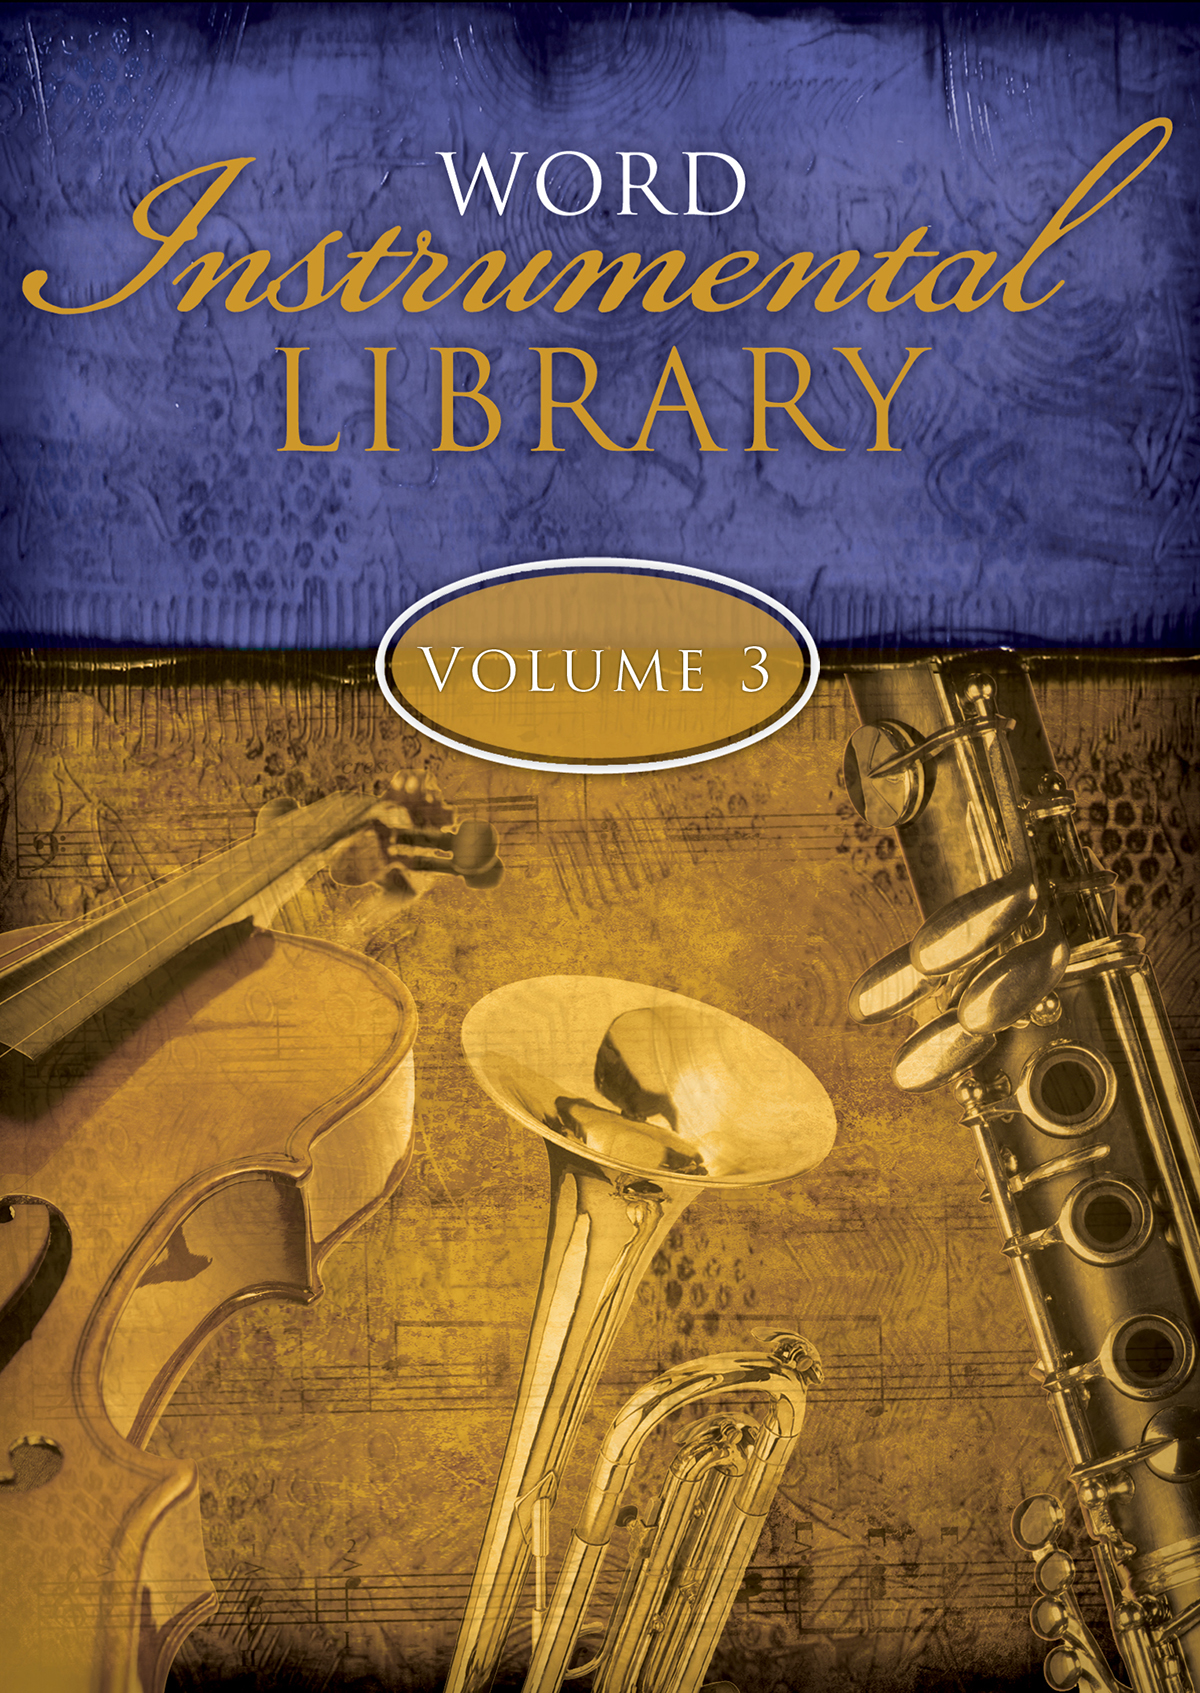 Word Instrumental Library, Volume 3